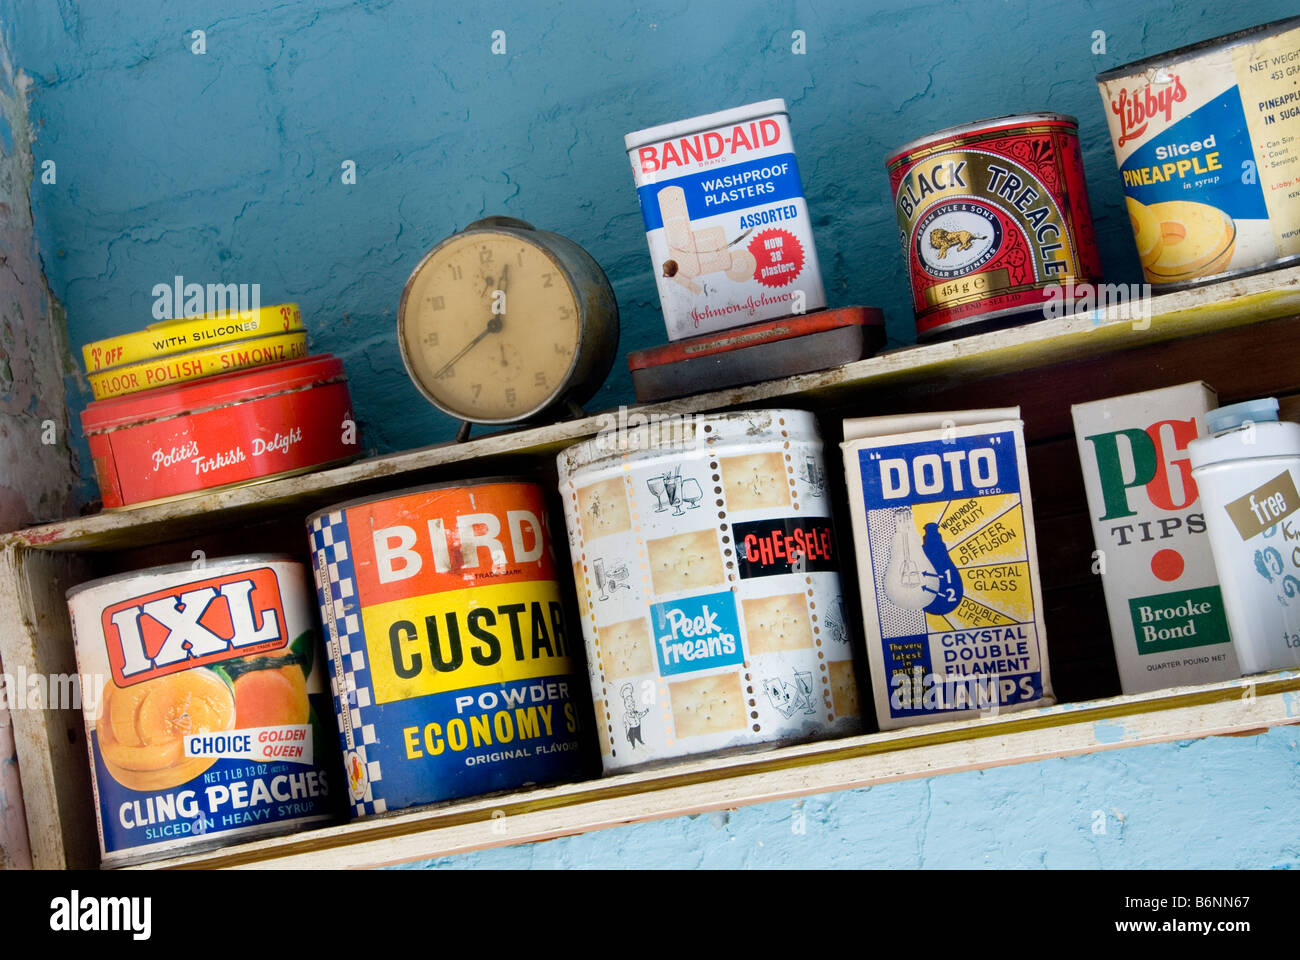 Old 70's food packets and products on crude shelf from the 1960's 1970s Stock Photo